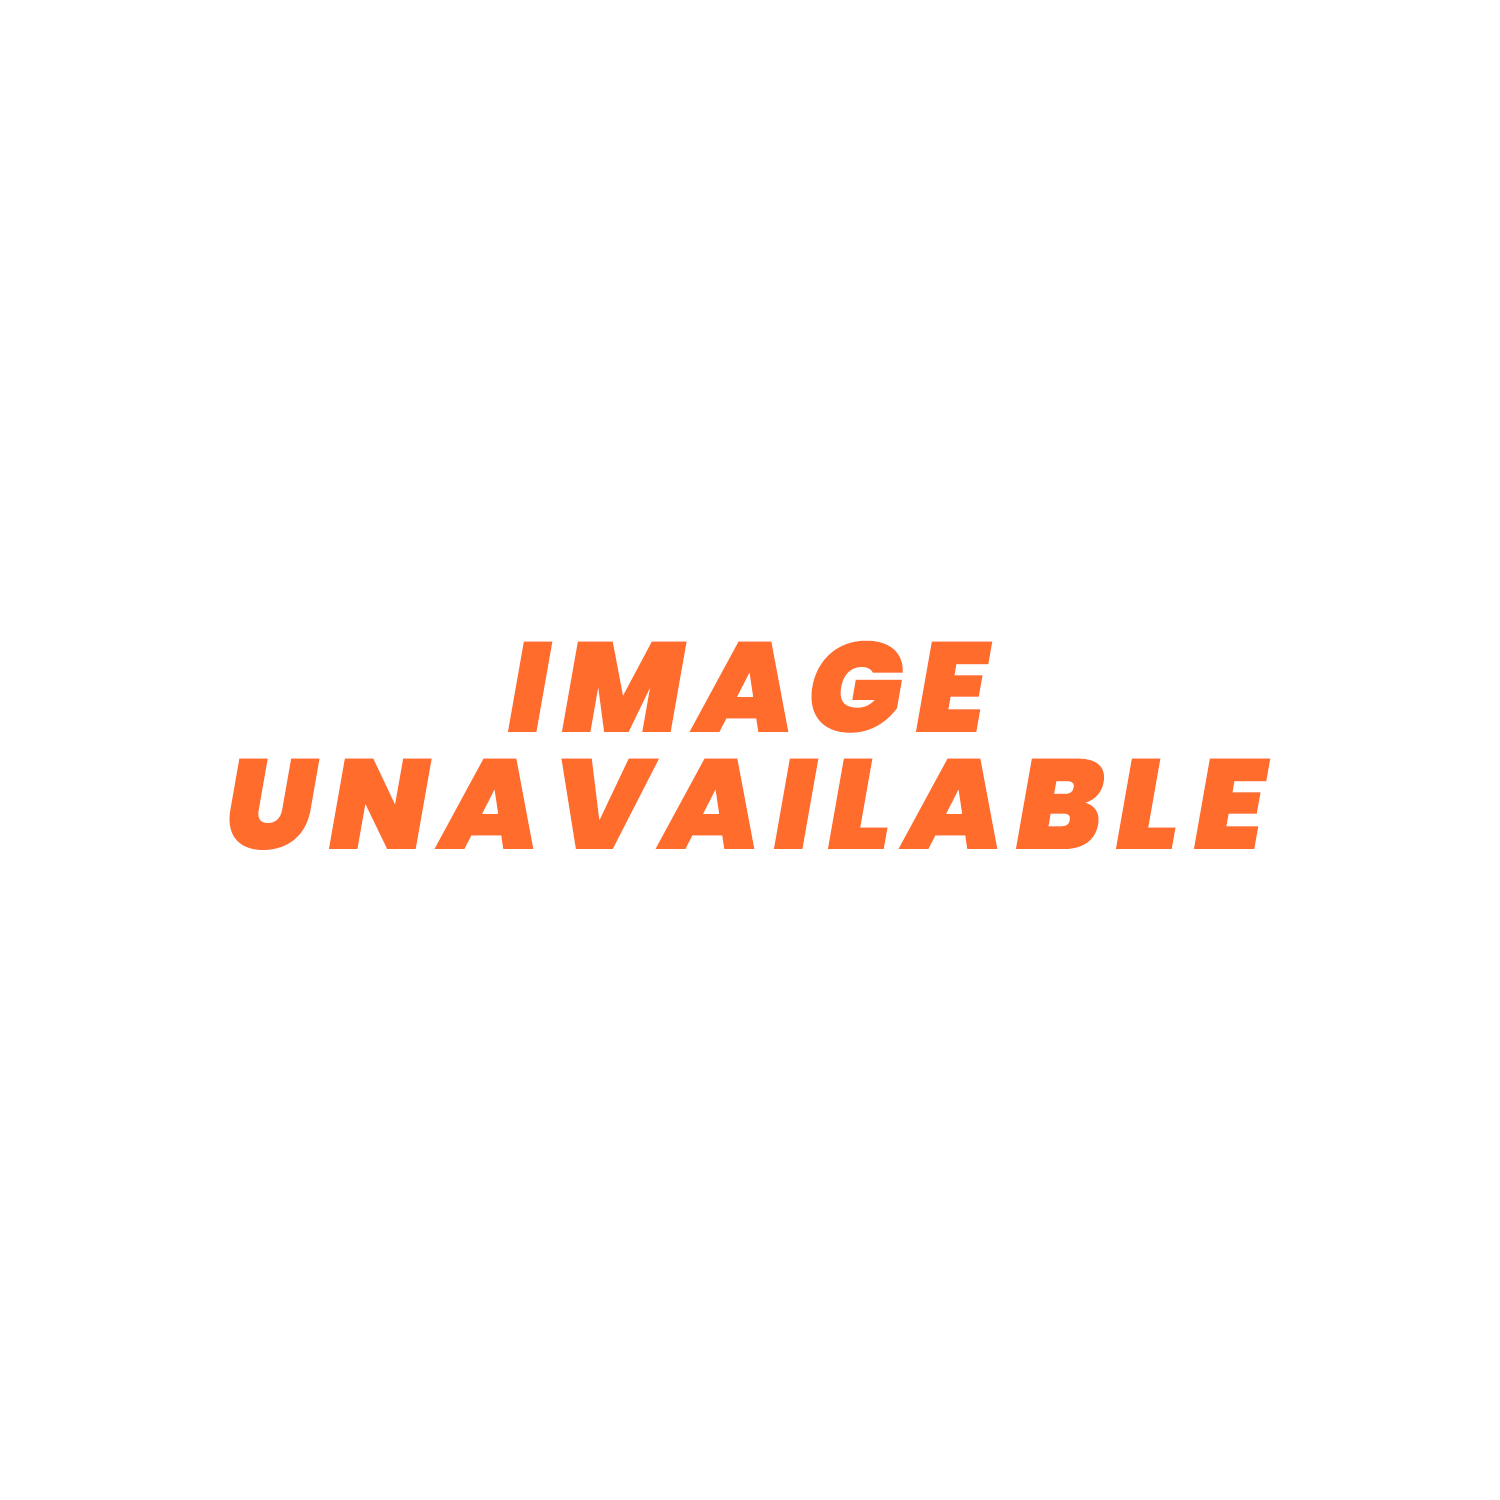 063 Strap Battery Tray - 177 x 212 mm